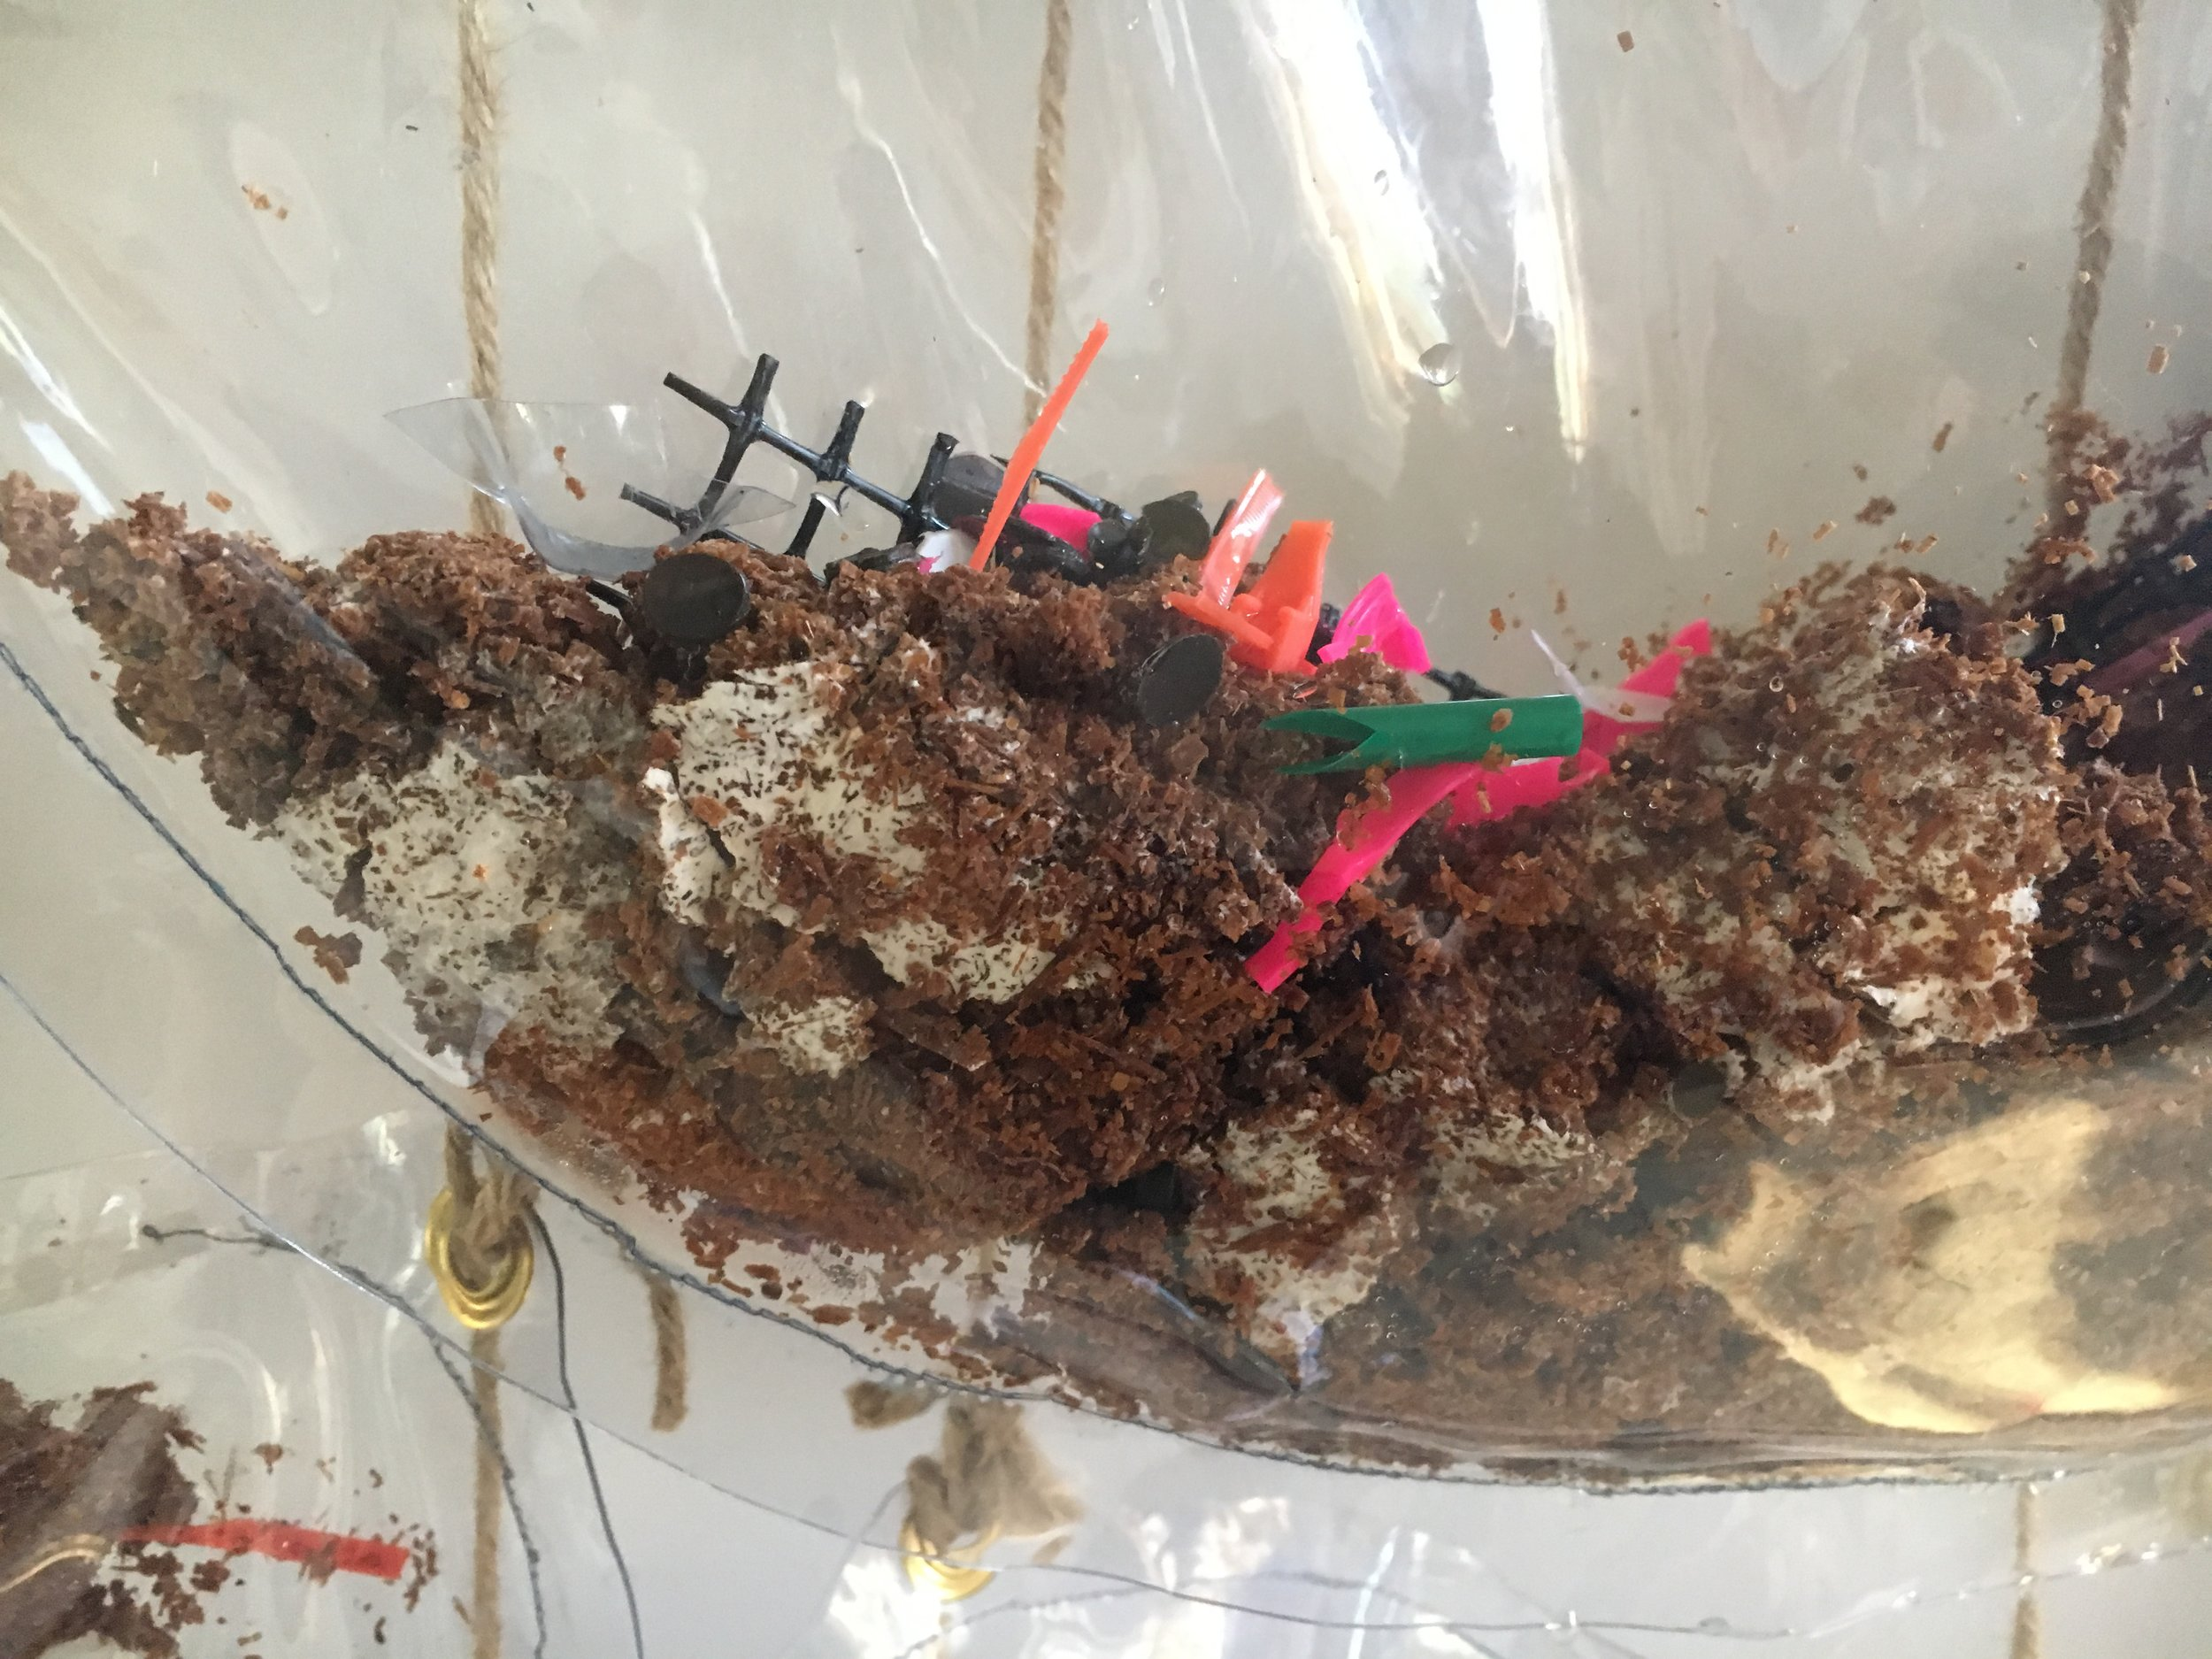 On view: Home Is Where the Plastic Eating Stomach Is  by Elizabeth Demaray and the greater Swale House community.  Come partake in an alternative form of plastic dispossession. Between June 29th and August 19th bring your plastic waste to Swale House and it may become feed for a living sculpture that digests plastic via white rot fungi. Utilizing an open source plastomach, (plastic + stomach) design, this entity can be fed plastic waste and may help us envision a world that's free of plastic debris. For directions on starting your own plastomach, updates on SH plastic contributions and a discussion of the emotions involved in using and disposing of plastic please visit  https://wordpress.com/read/feeds/45327210/posts/2364808341